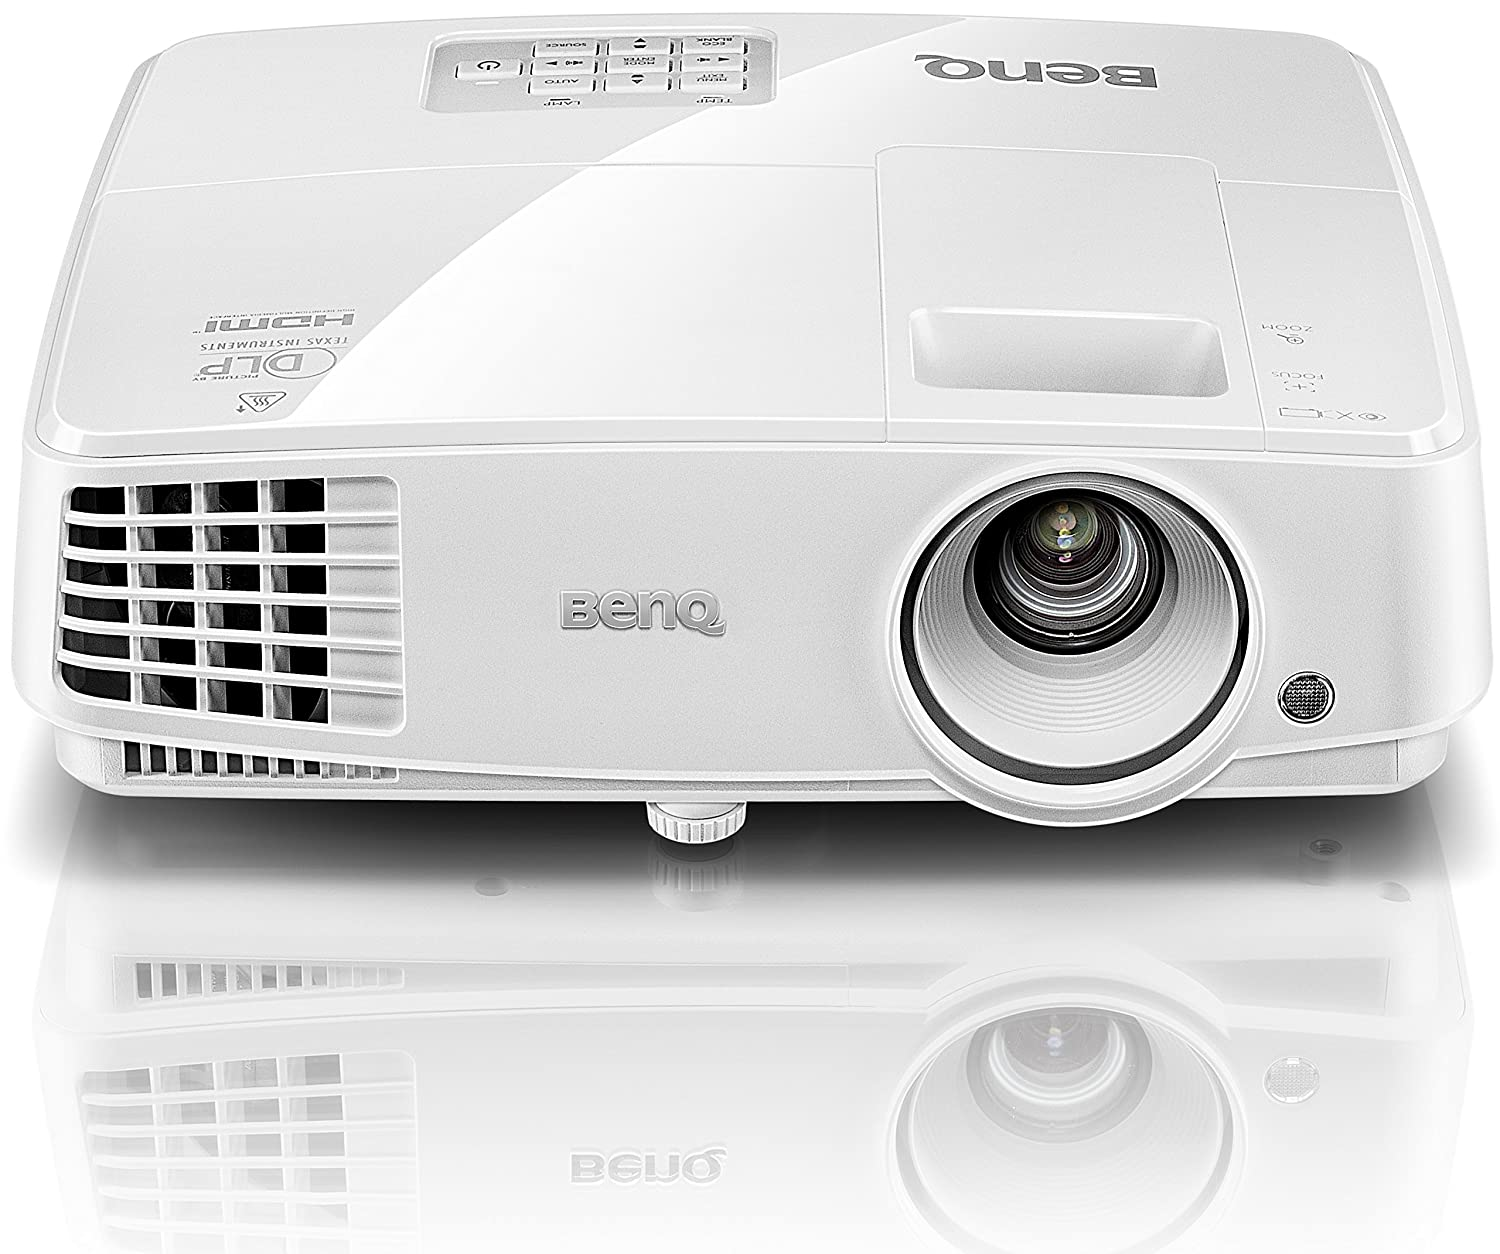 BenQ TH530 Full HD 3D DLP-Projektor (Full HD, 3200 ANSI Lumen, 10000:1 Kontrast)